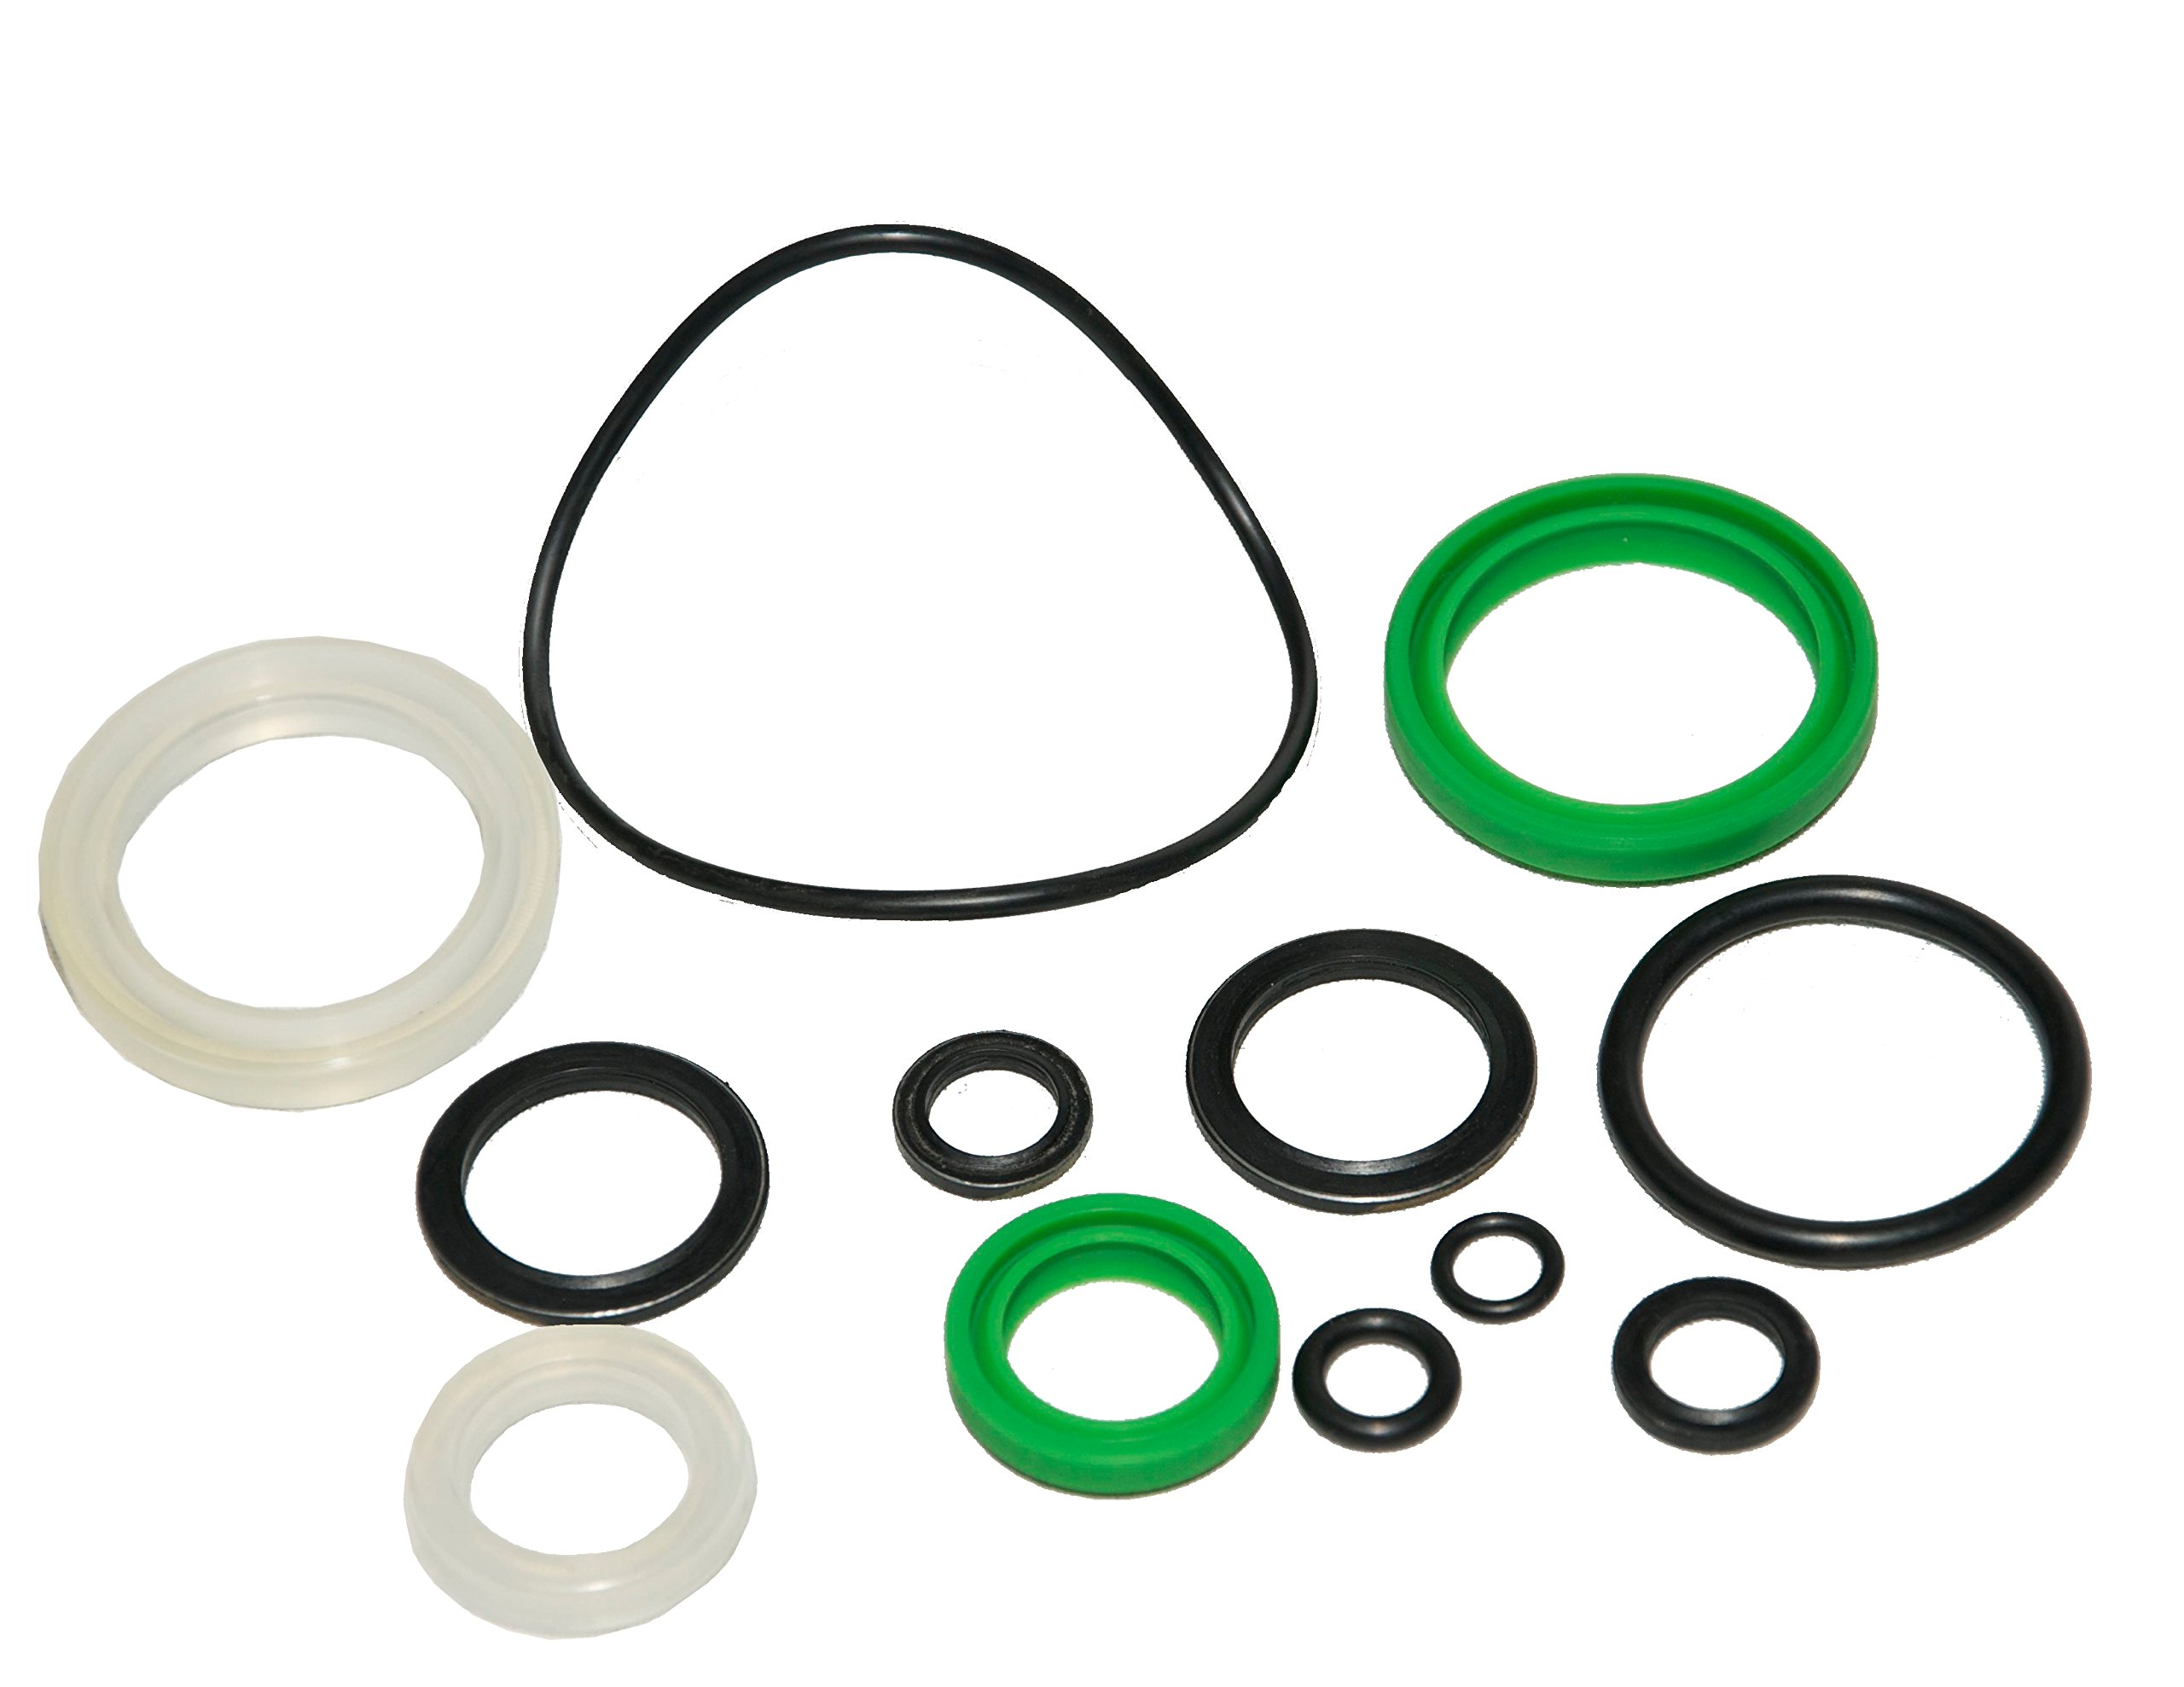 Mighty Lift BK100 Seal Kits for B Series Pallet Jacks